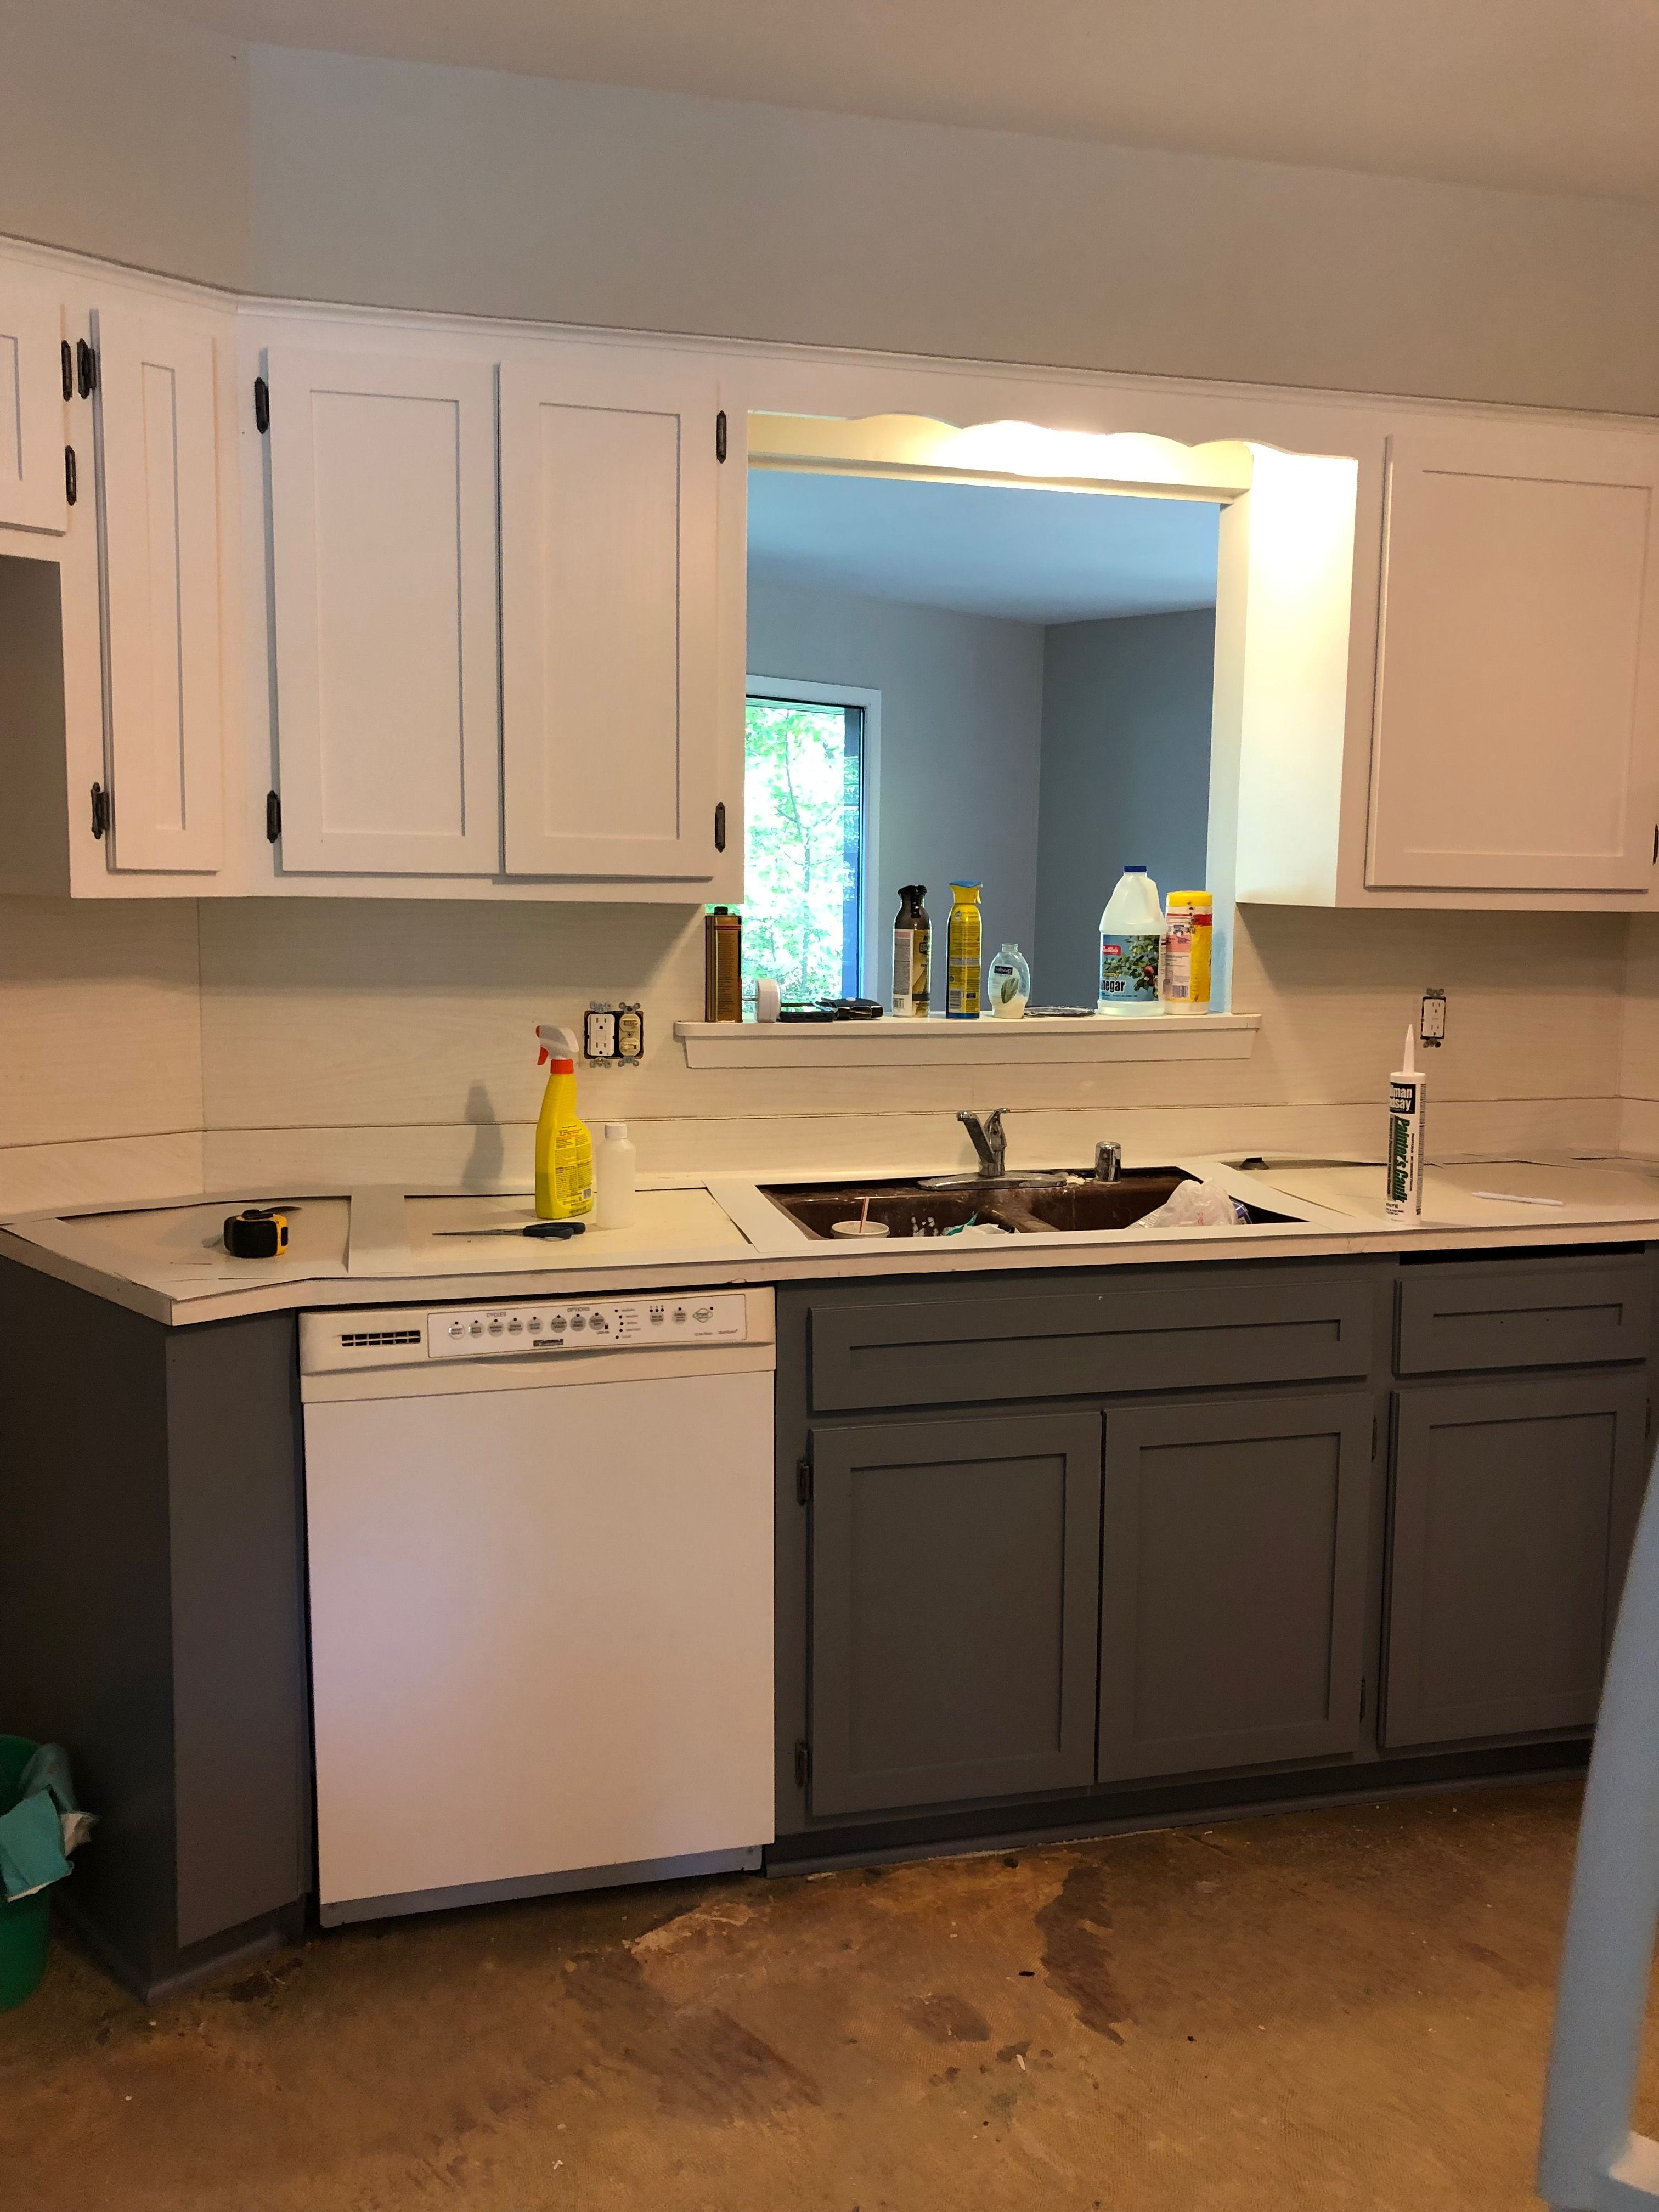 pin by susan r on s 35th street with images kitchen cabinets home decor bathroom vanity on r kitchen cabinets id=82742